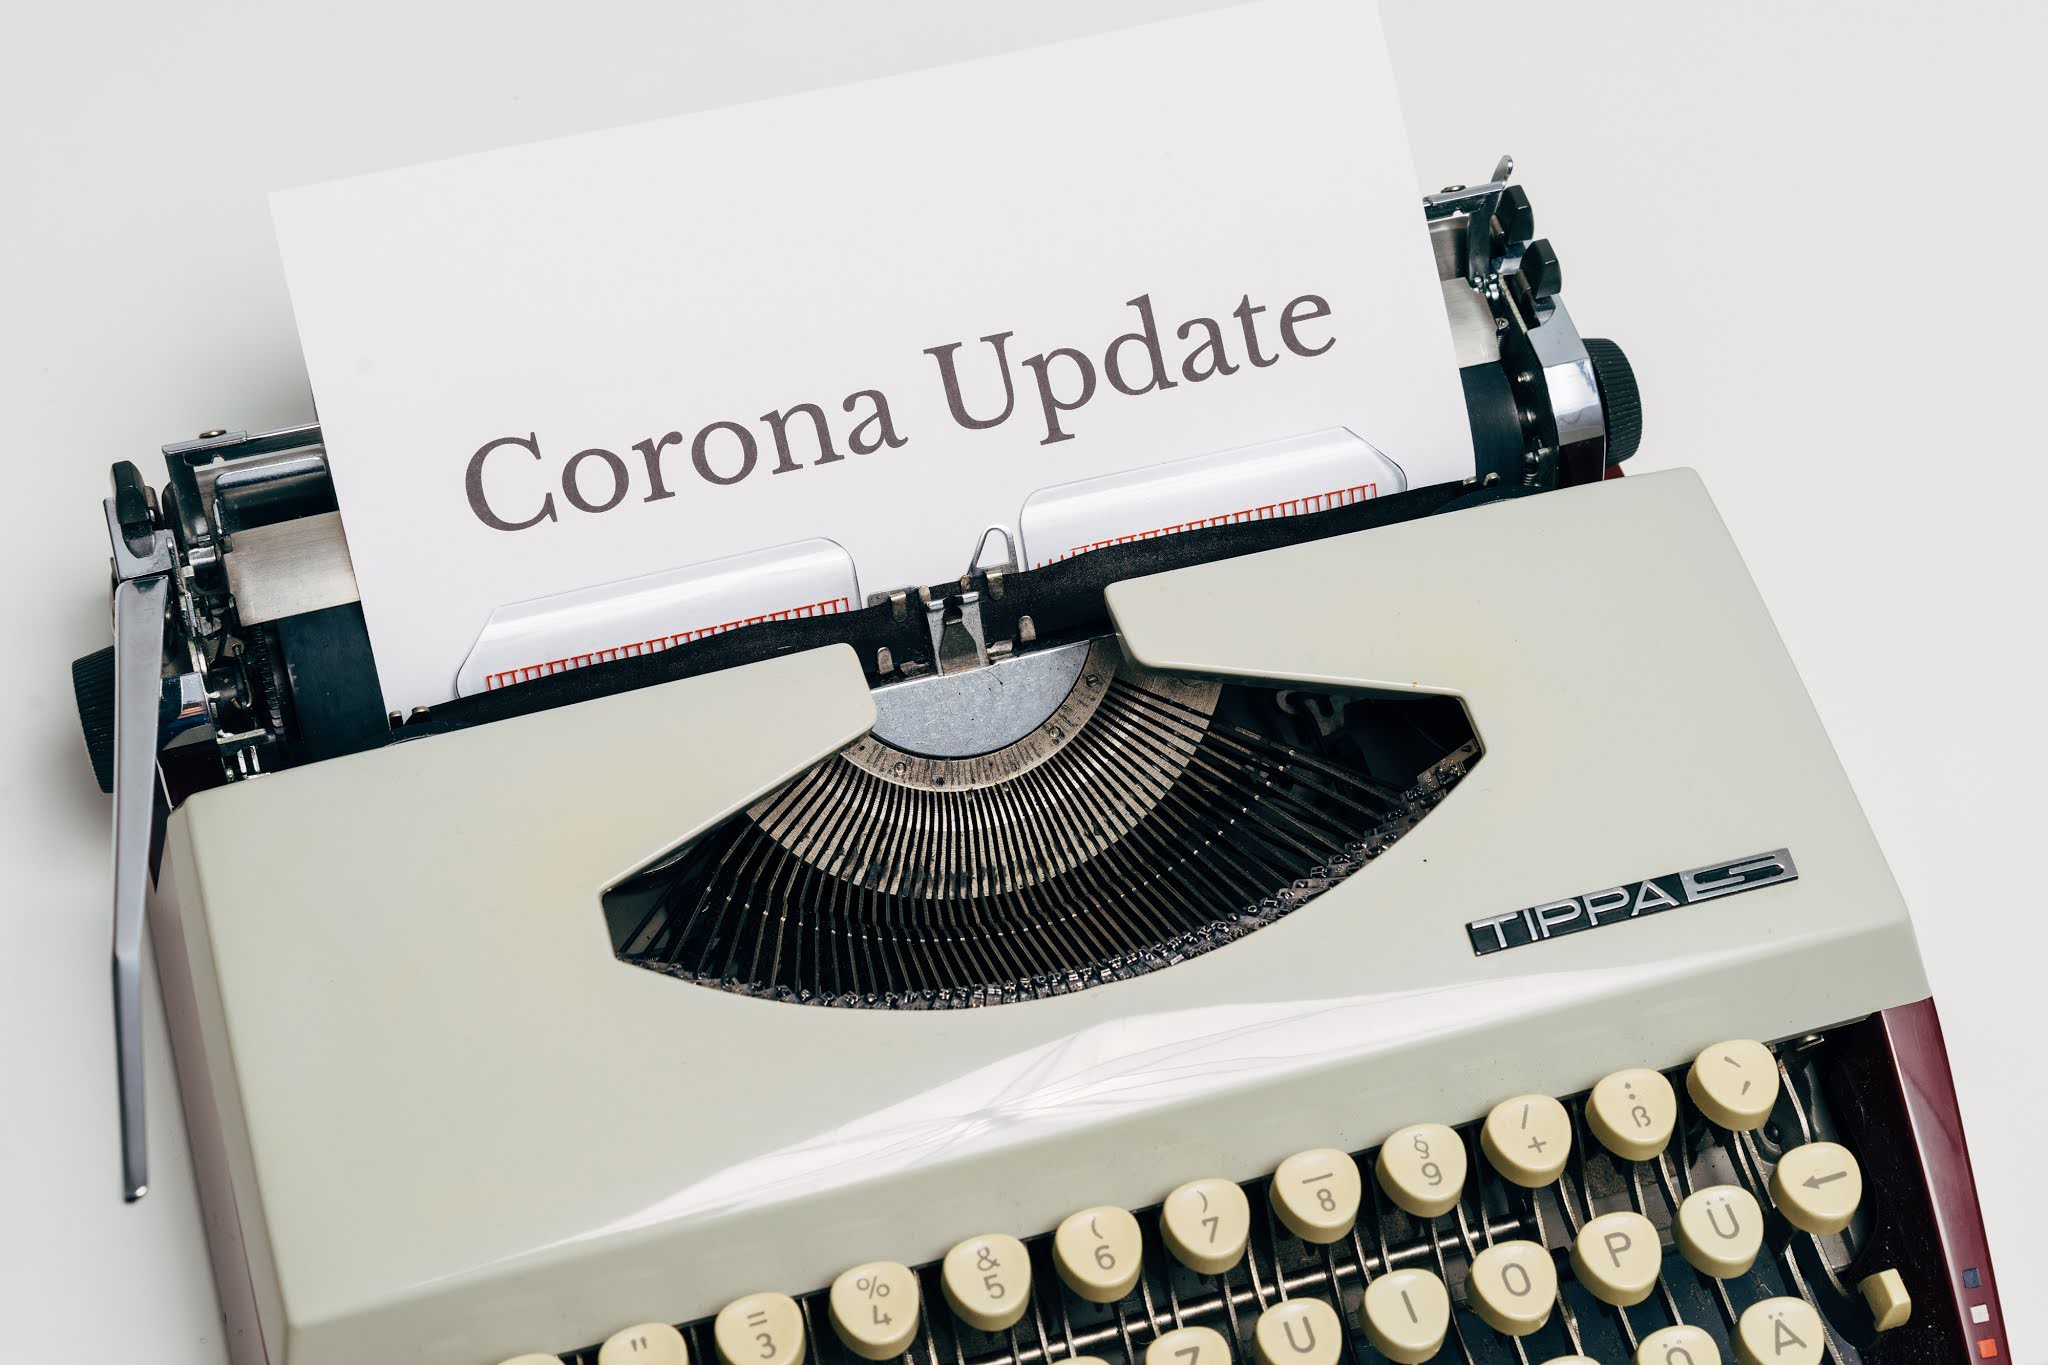 Old-fashioned typwriter with Corona Update typed on a piece of paper. Picture by Markus Winkler for Pexels